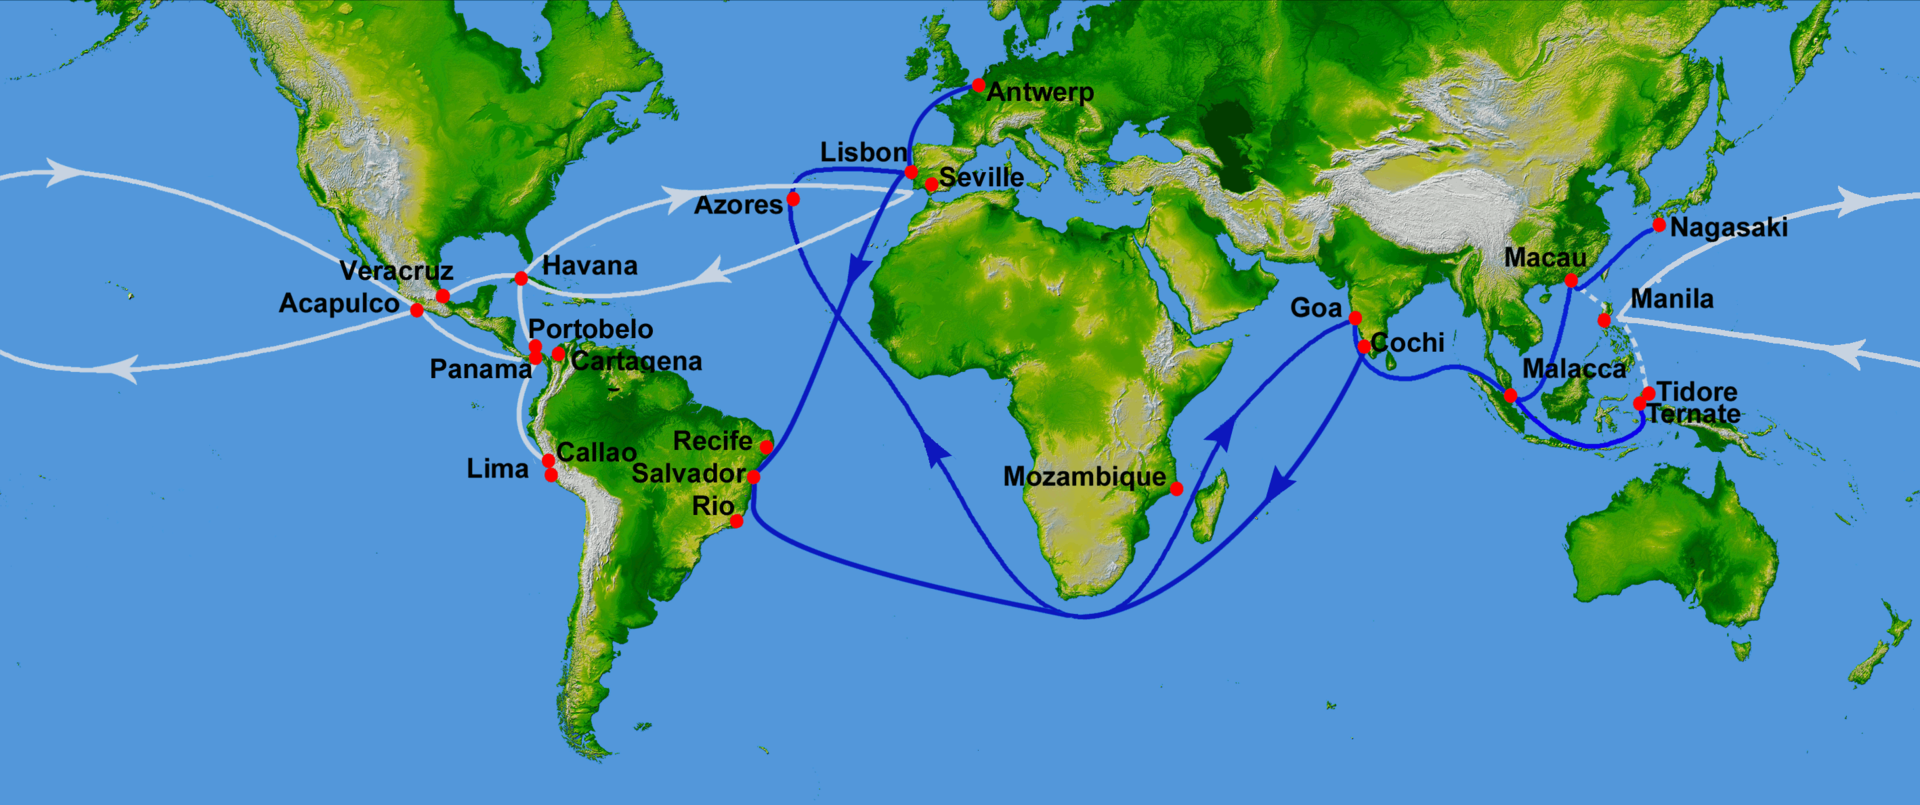 16th_century_portuguese_spanish_trade_routes.png